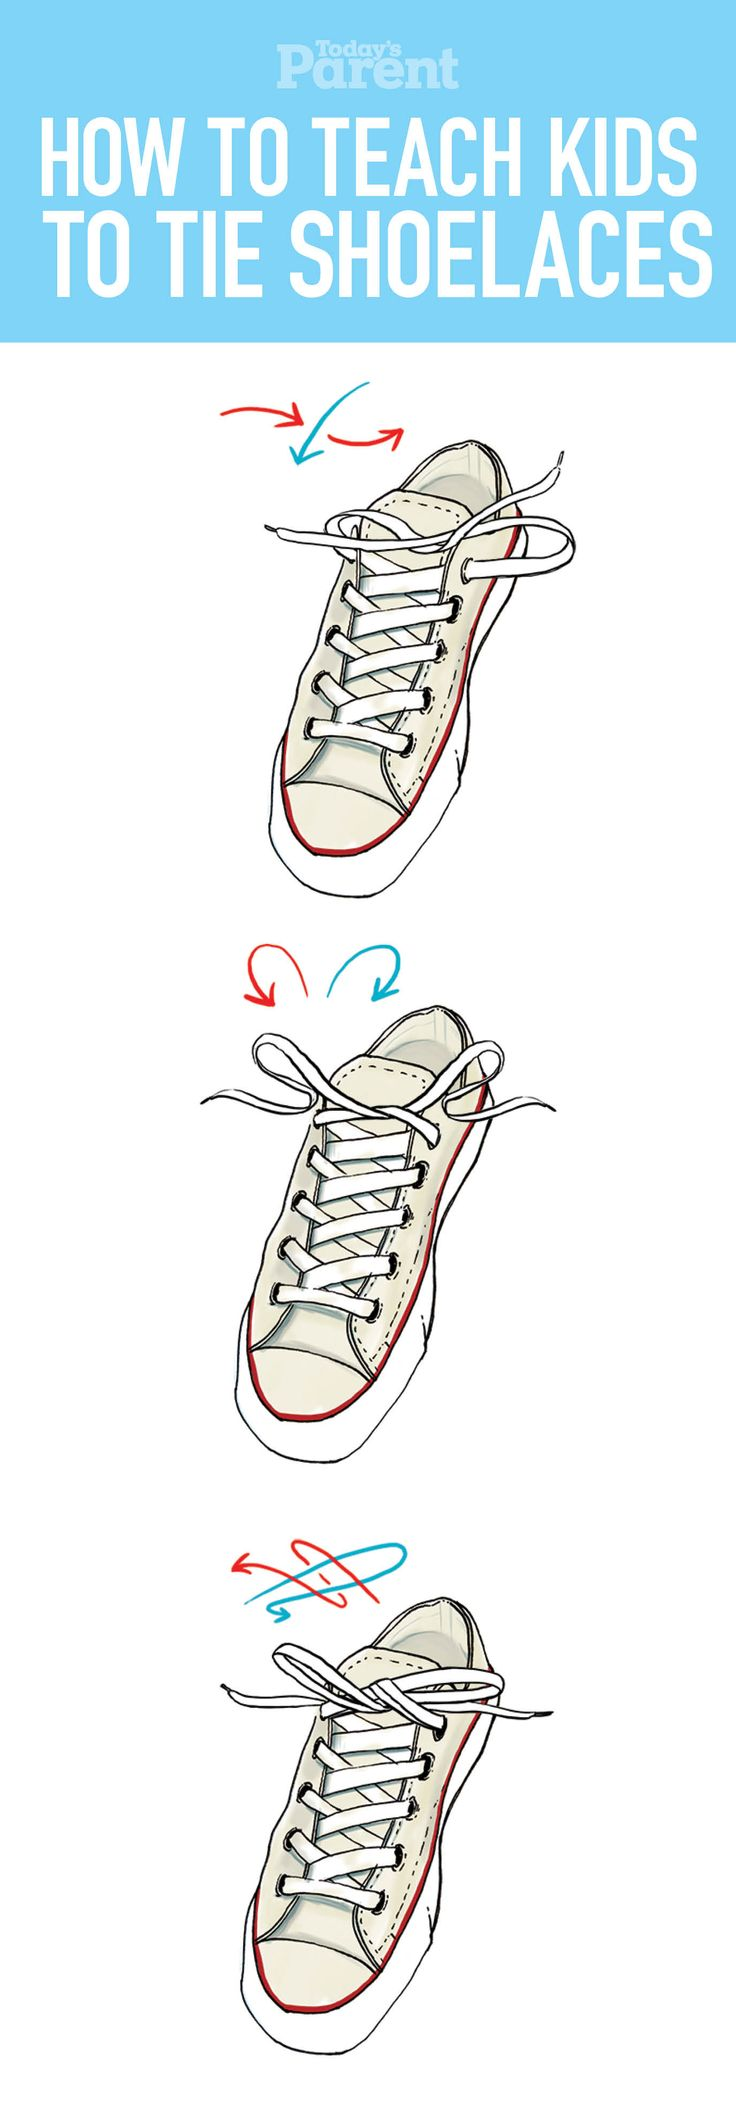 Best Way To Teach Kids To Tie Shoes